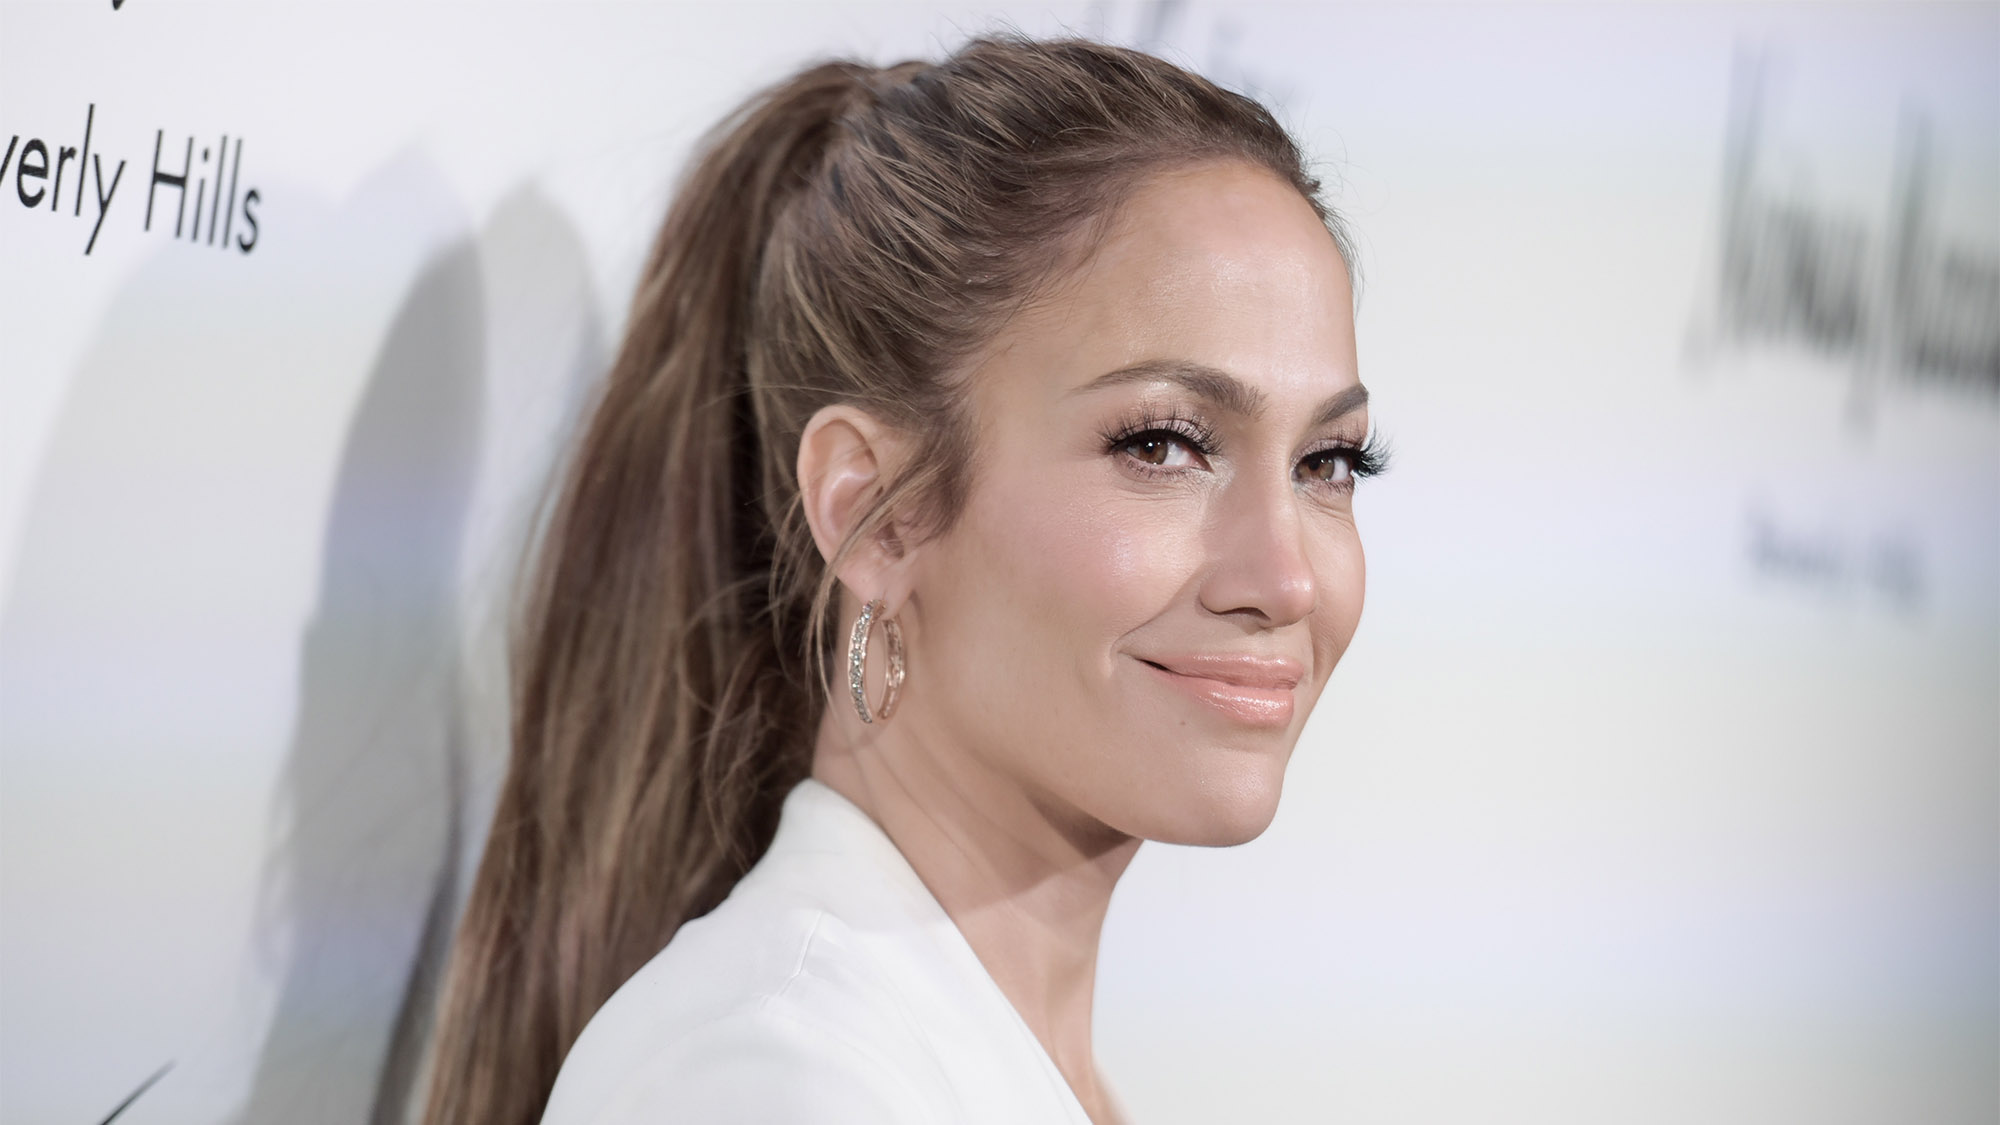 Here's why this make up free selfie of Jennifer Lopez is going viral